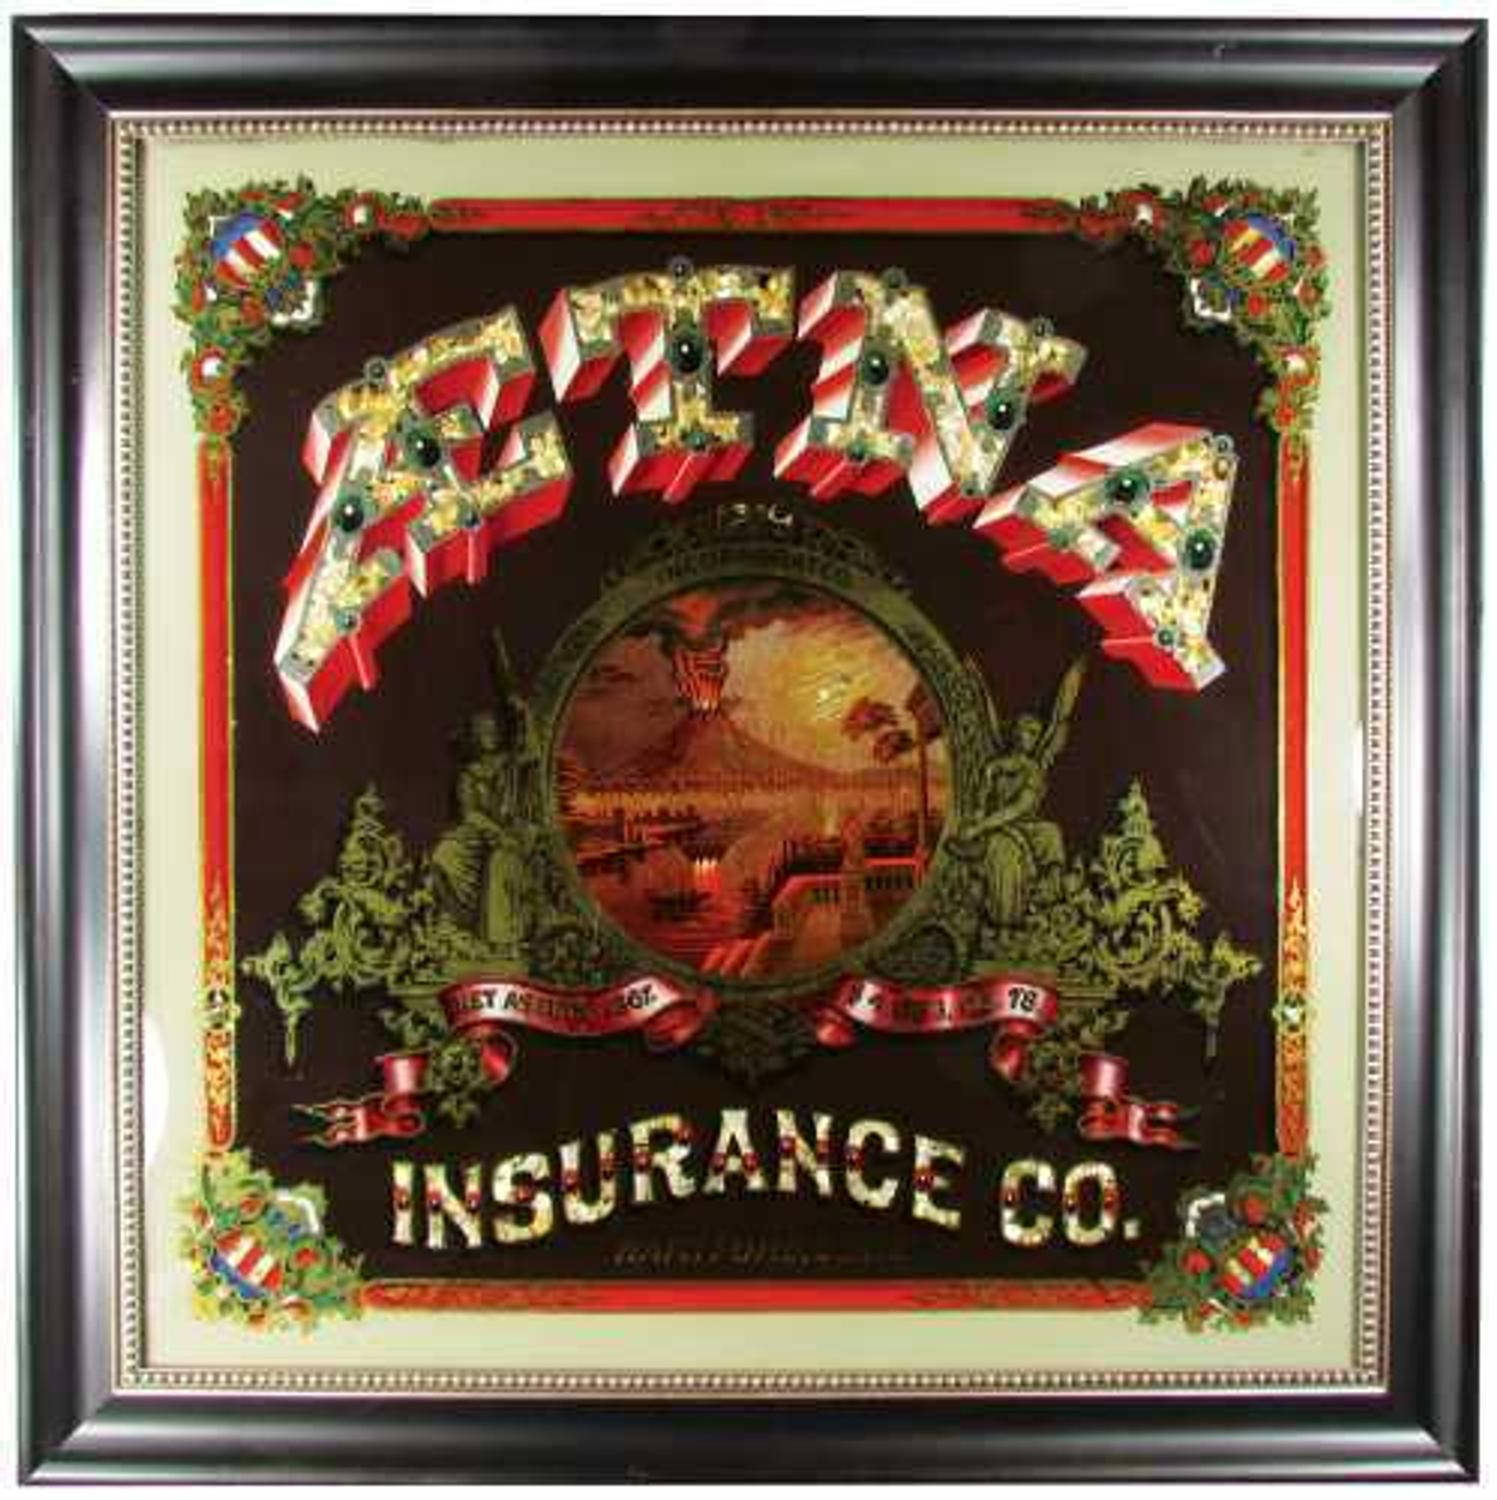 Aetna Insurance Company Reverse Glass Painted Sign Brings